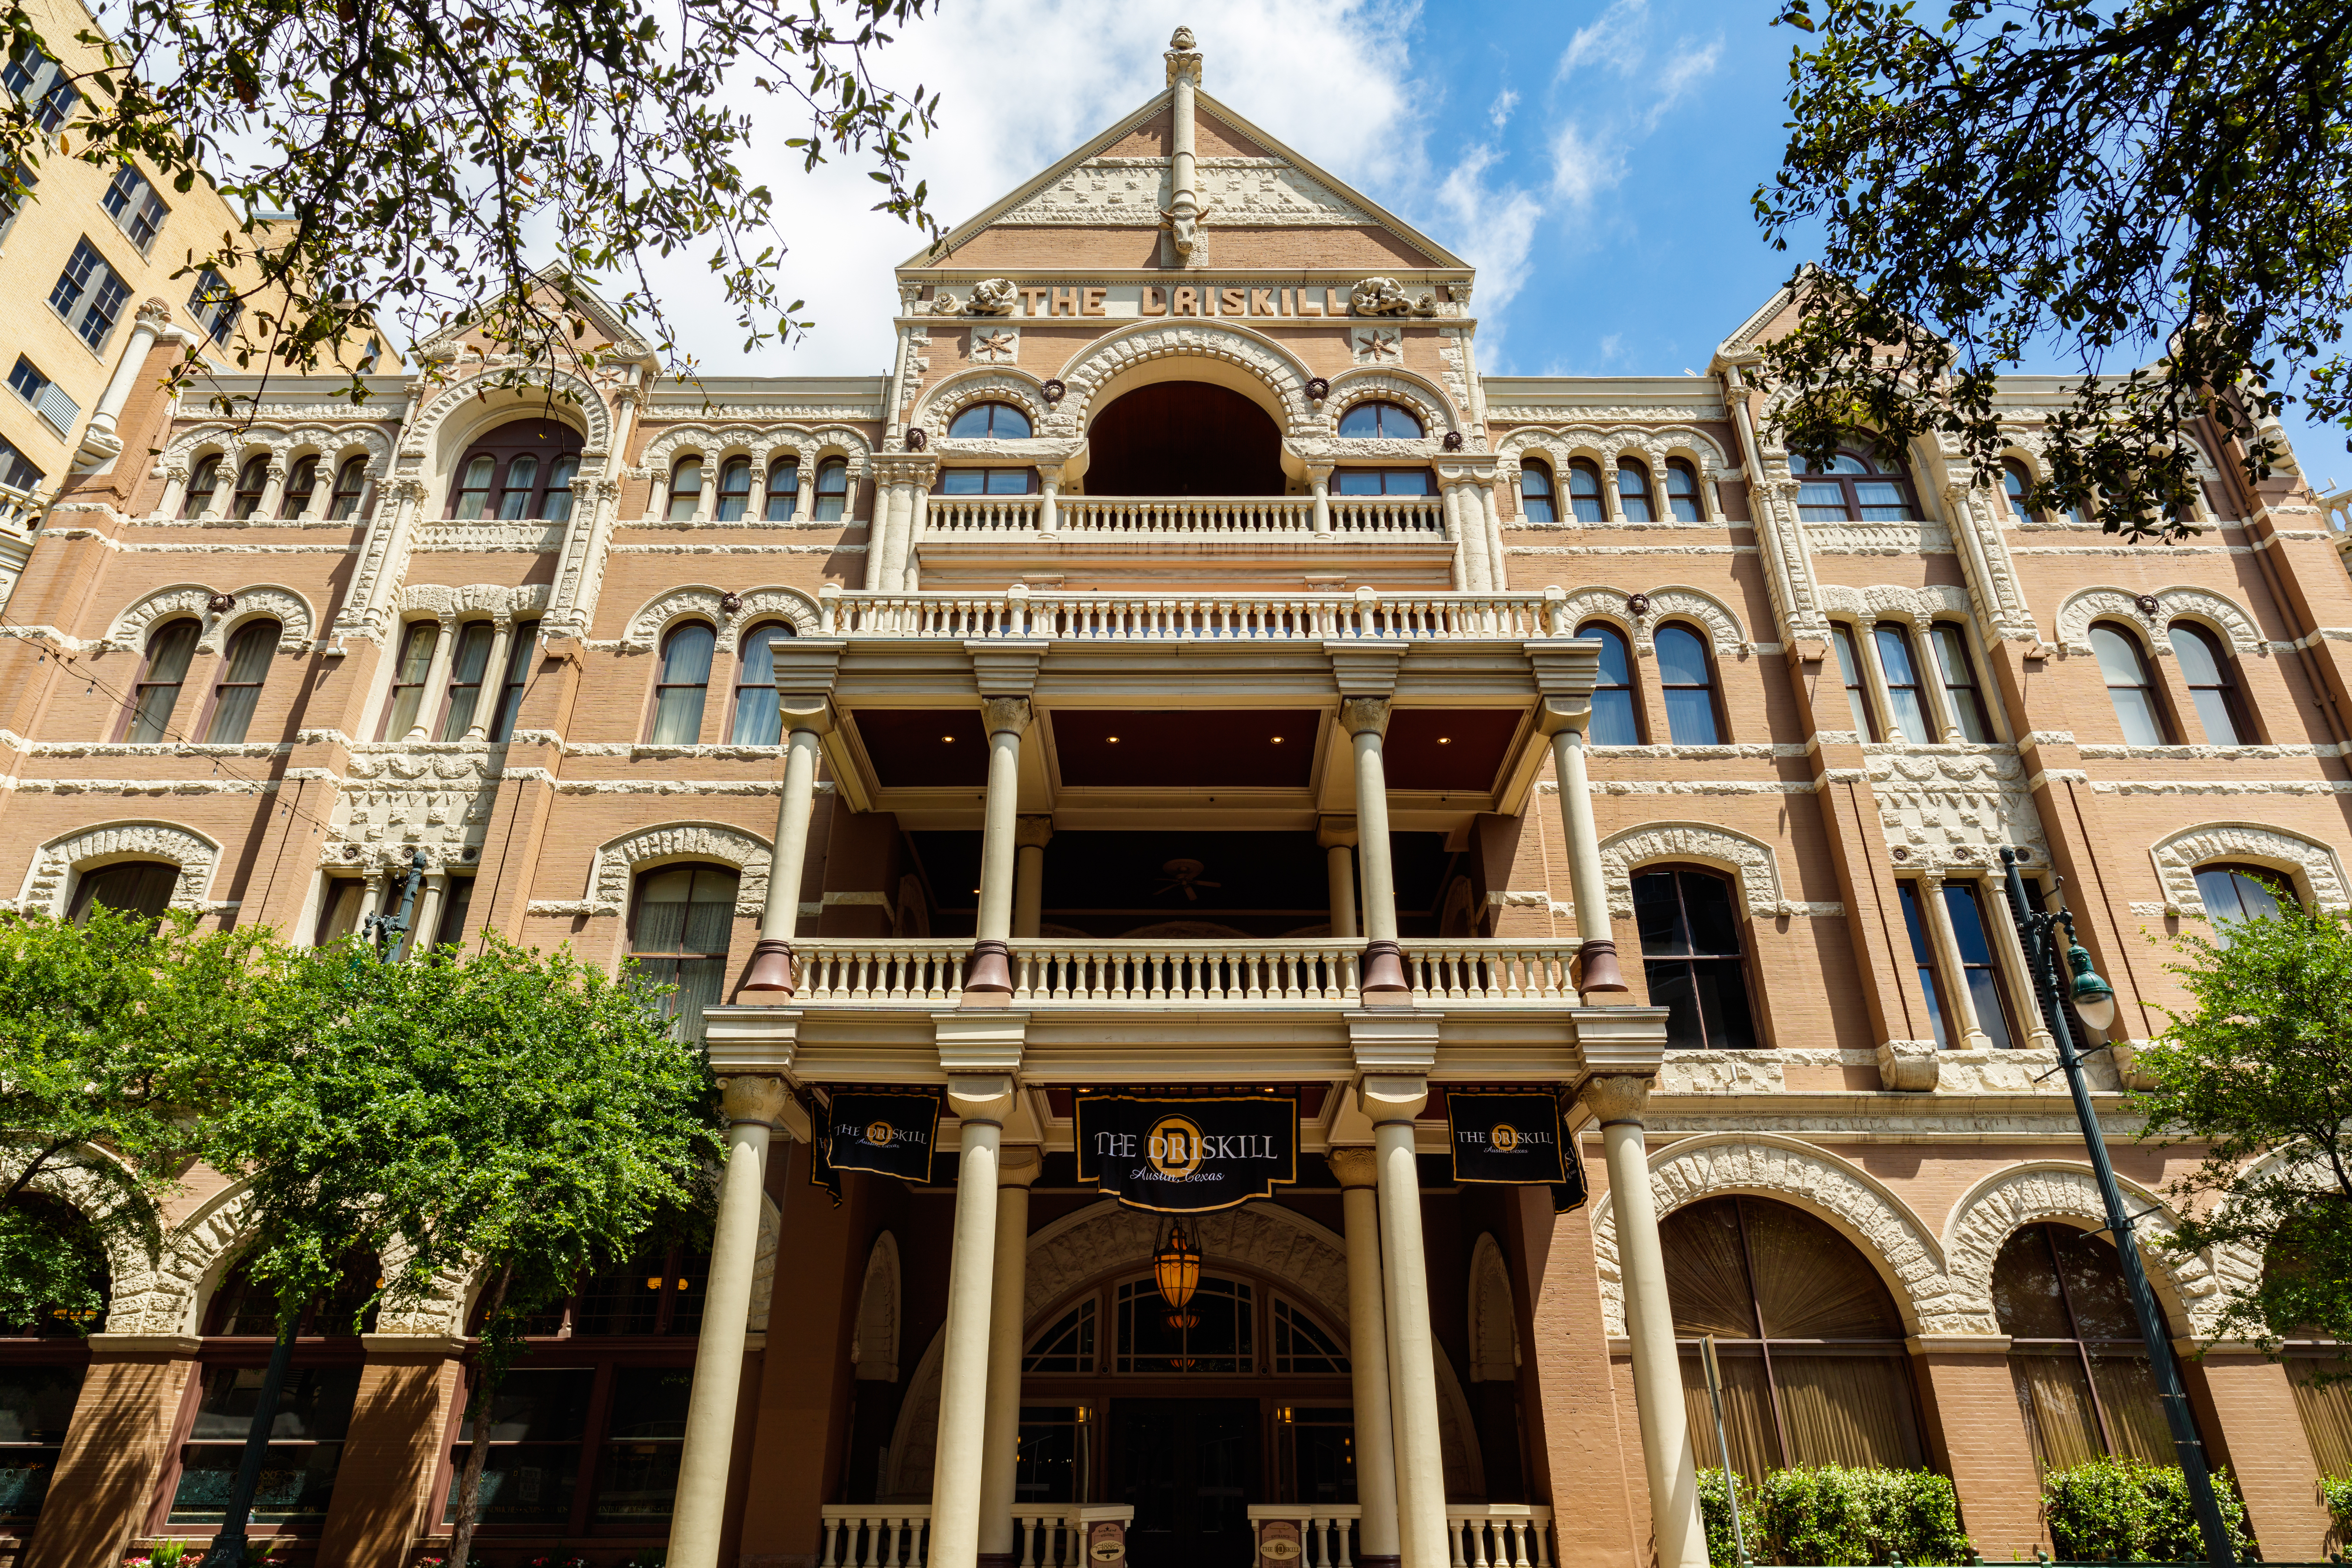 The exterior of the Driskill hotel in Austin. The facade is red brick with multiple windows. There are columns flanking the entrance area.